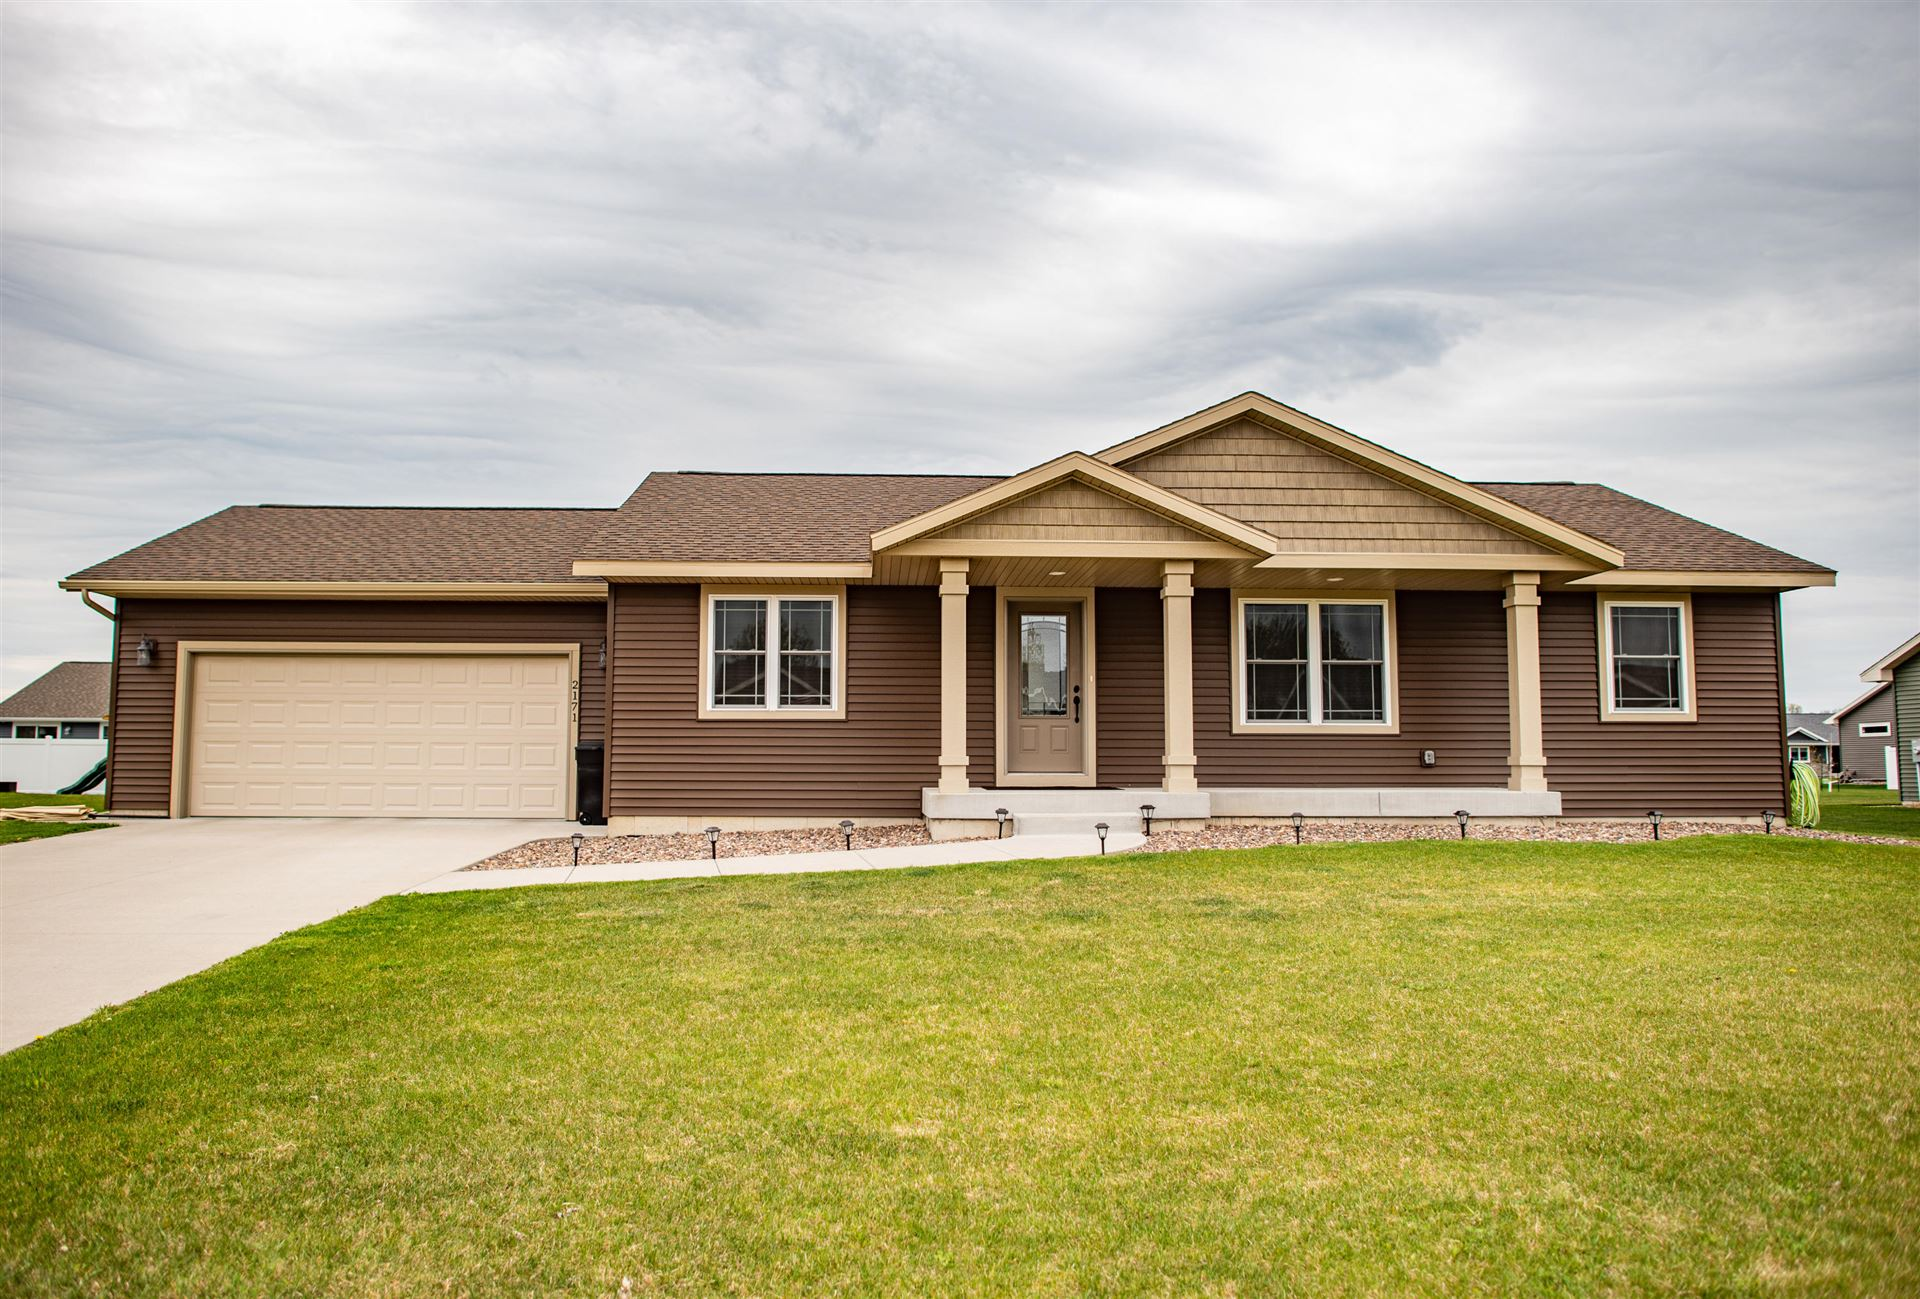 2171 REMINGTON AVE, Sparta, WI 54656 - MLS#: 1689277